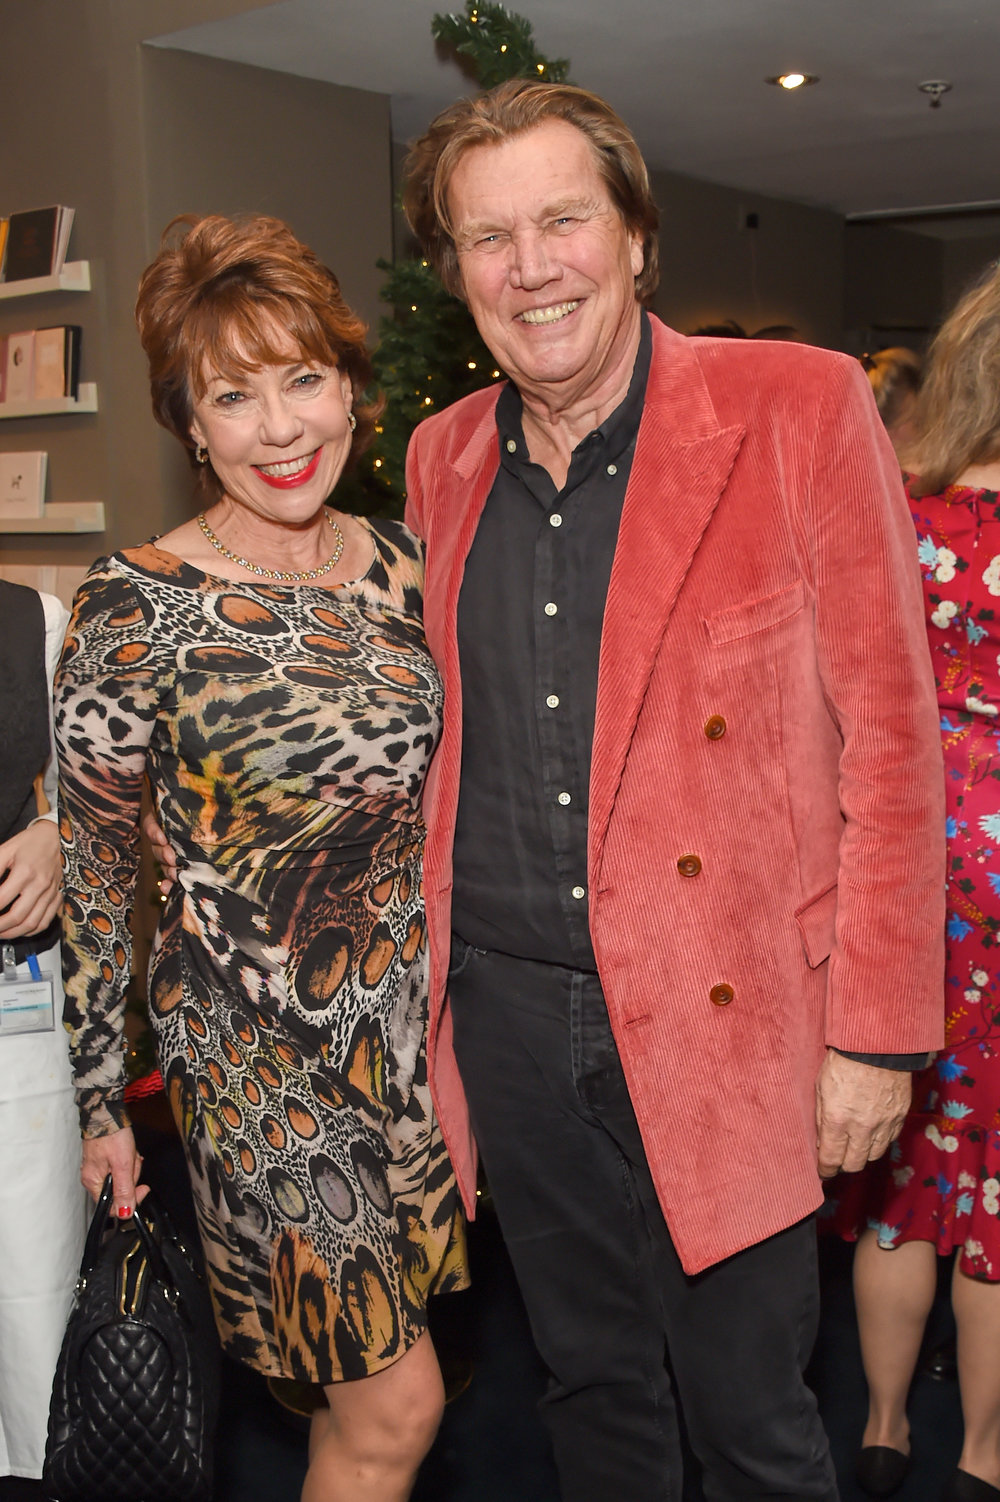 Kathy Lette and Theo Fennell. Courtesy of Dave Benett.